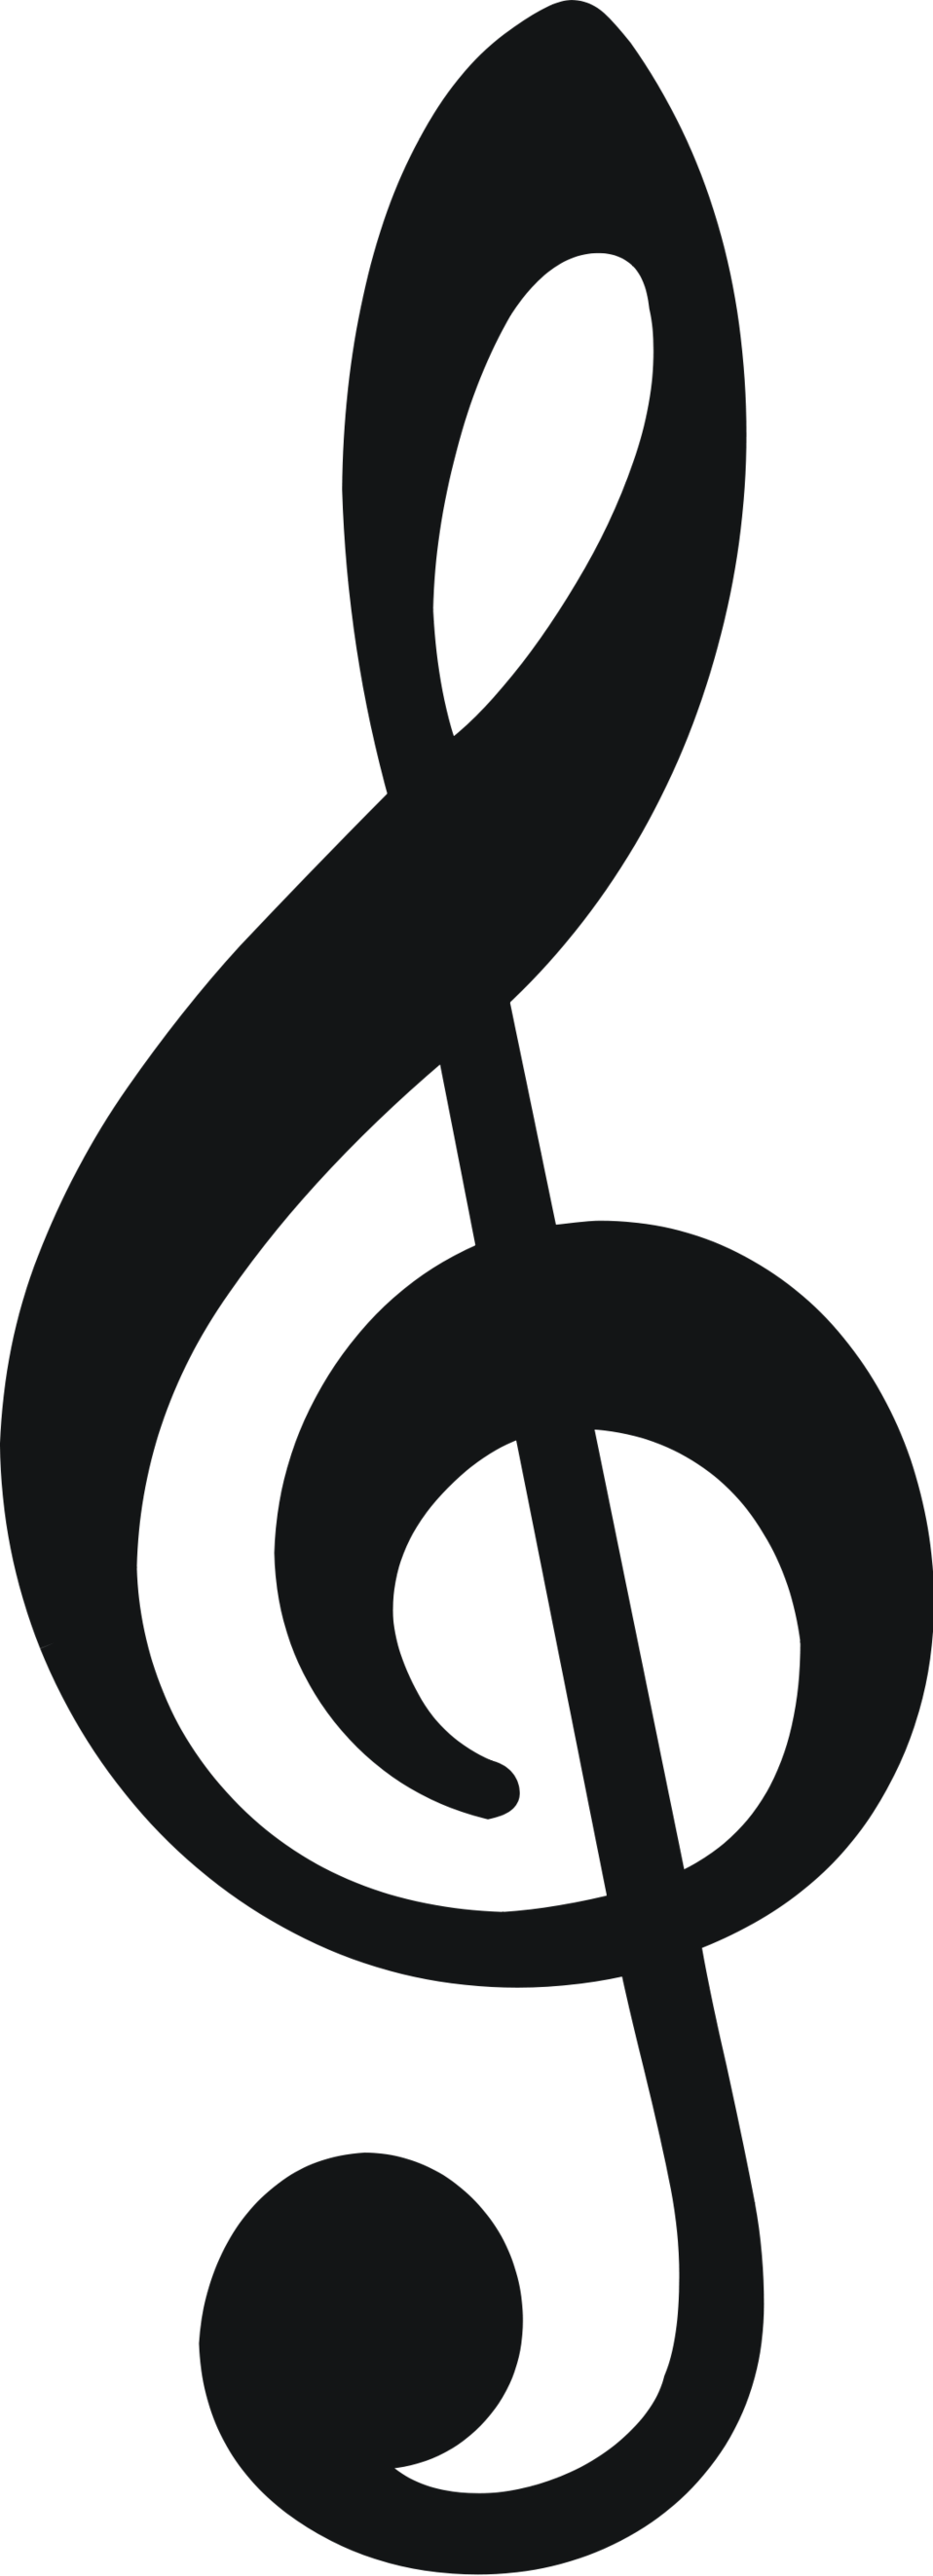 Music notes graffiti png. Treble clef no background